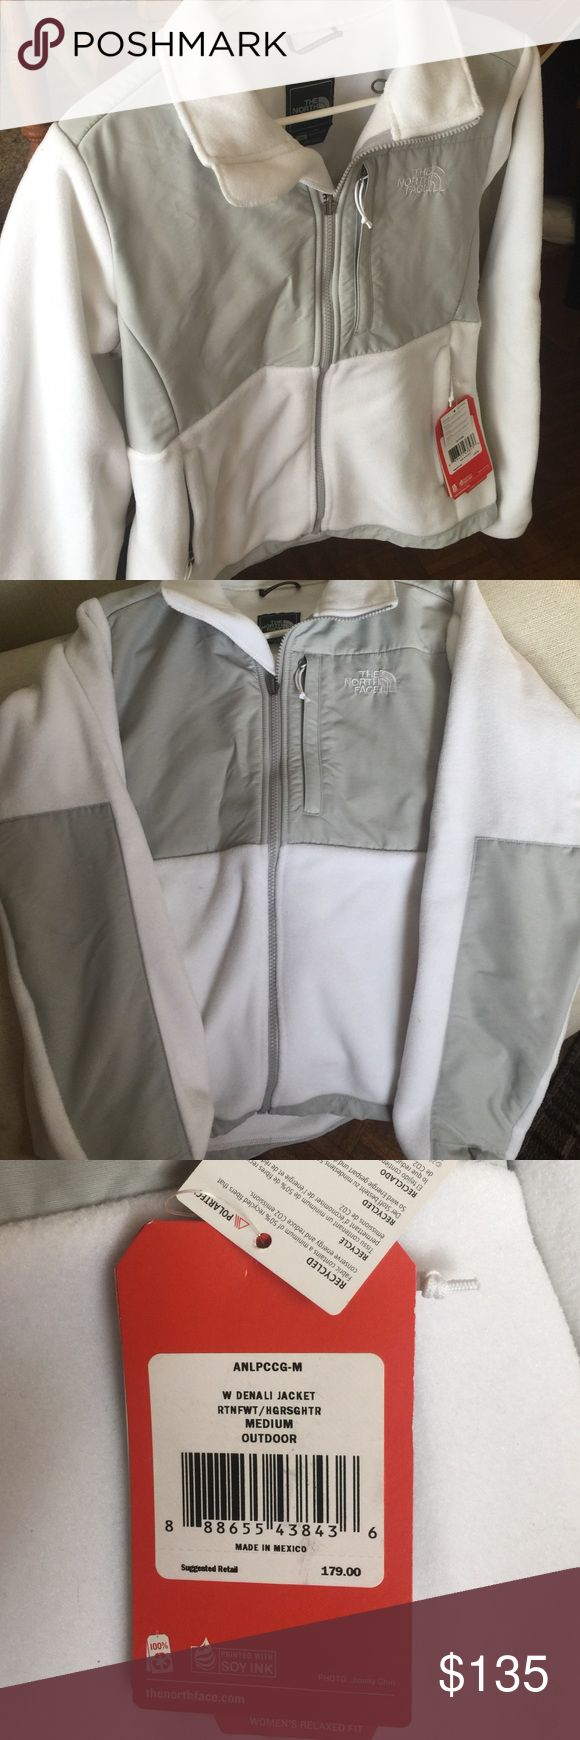 🎀🎉WEEKEND ONLY SALE🎉🎀 WOMENS WHITE NORTHFACE JACKET                STYLE IS DENALI.                                                    3 ZIPPER (OUTTER) POCKETS                             NEW WITH TAGS, NEVER WORN OR WASHED   SIZE M/M                                                           RETAIL PRICE $179 + TAX                                      🚫NO TRADE🚫 The North Face Jackets & Coats Utility Jackets